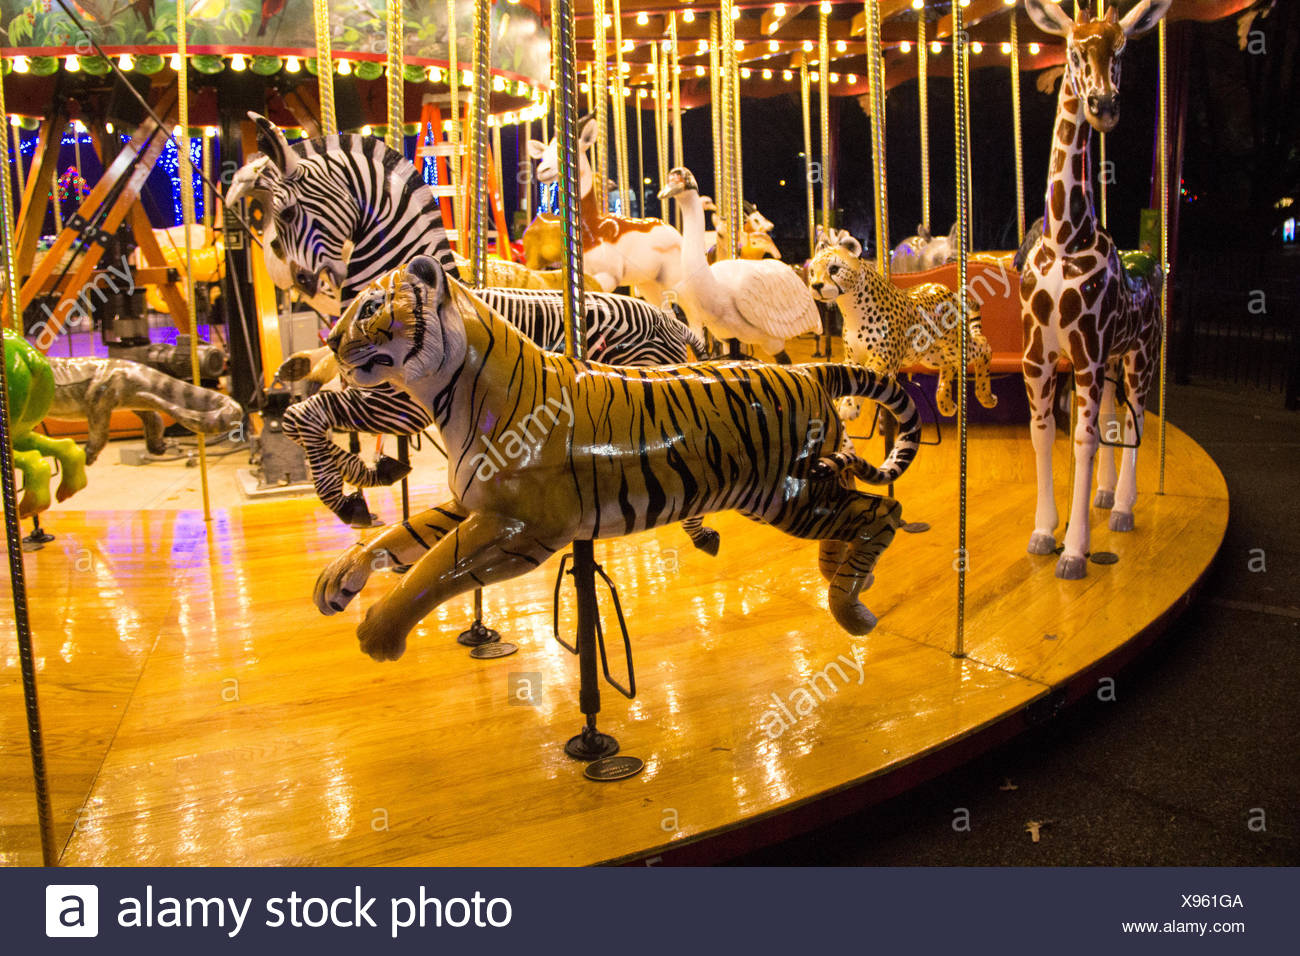 The Zoo's carousel is a varied menagerie of colorful animals. - Stock Image